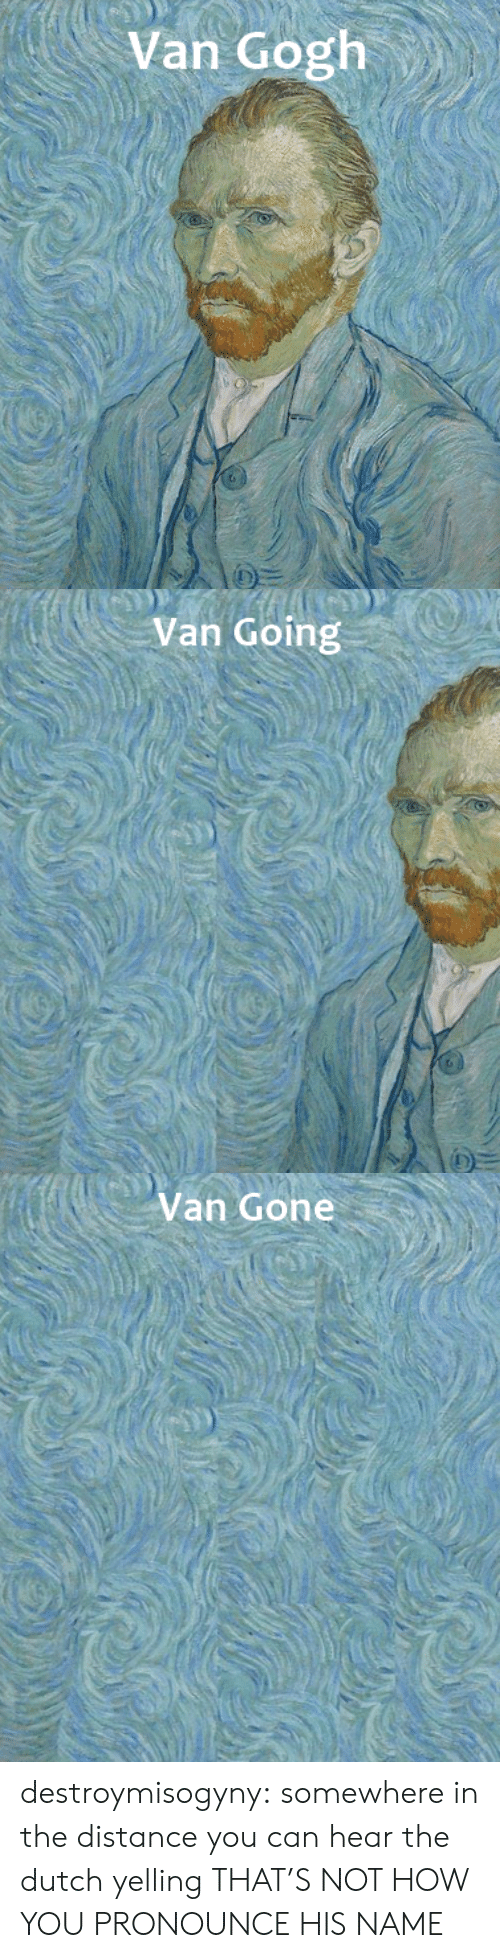 Tumblr, Blog, and Http: Van Gogh   Van Going   Van Gone destroymisogyny:  somewhere in the distance you can hear the dutch yelling THAT'S NOT HOW YOU PRONOUNCE HIS NAME